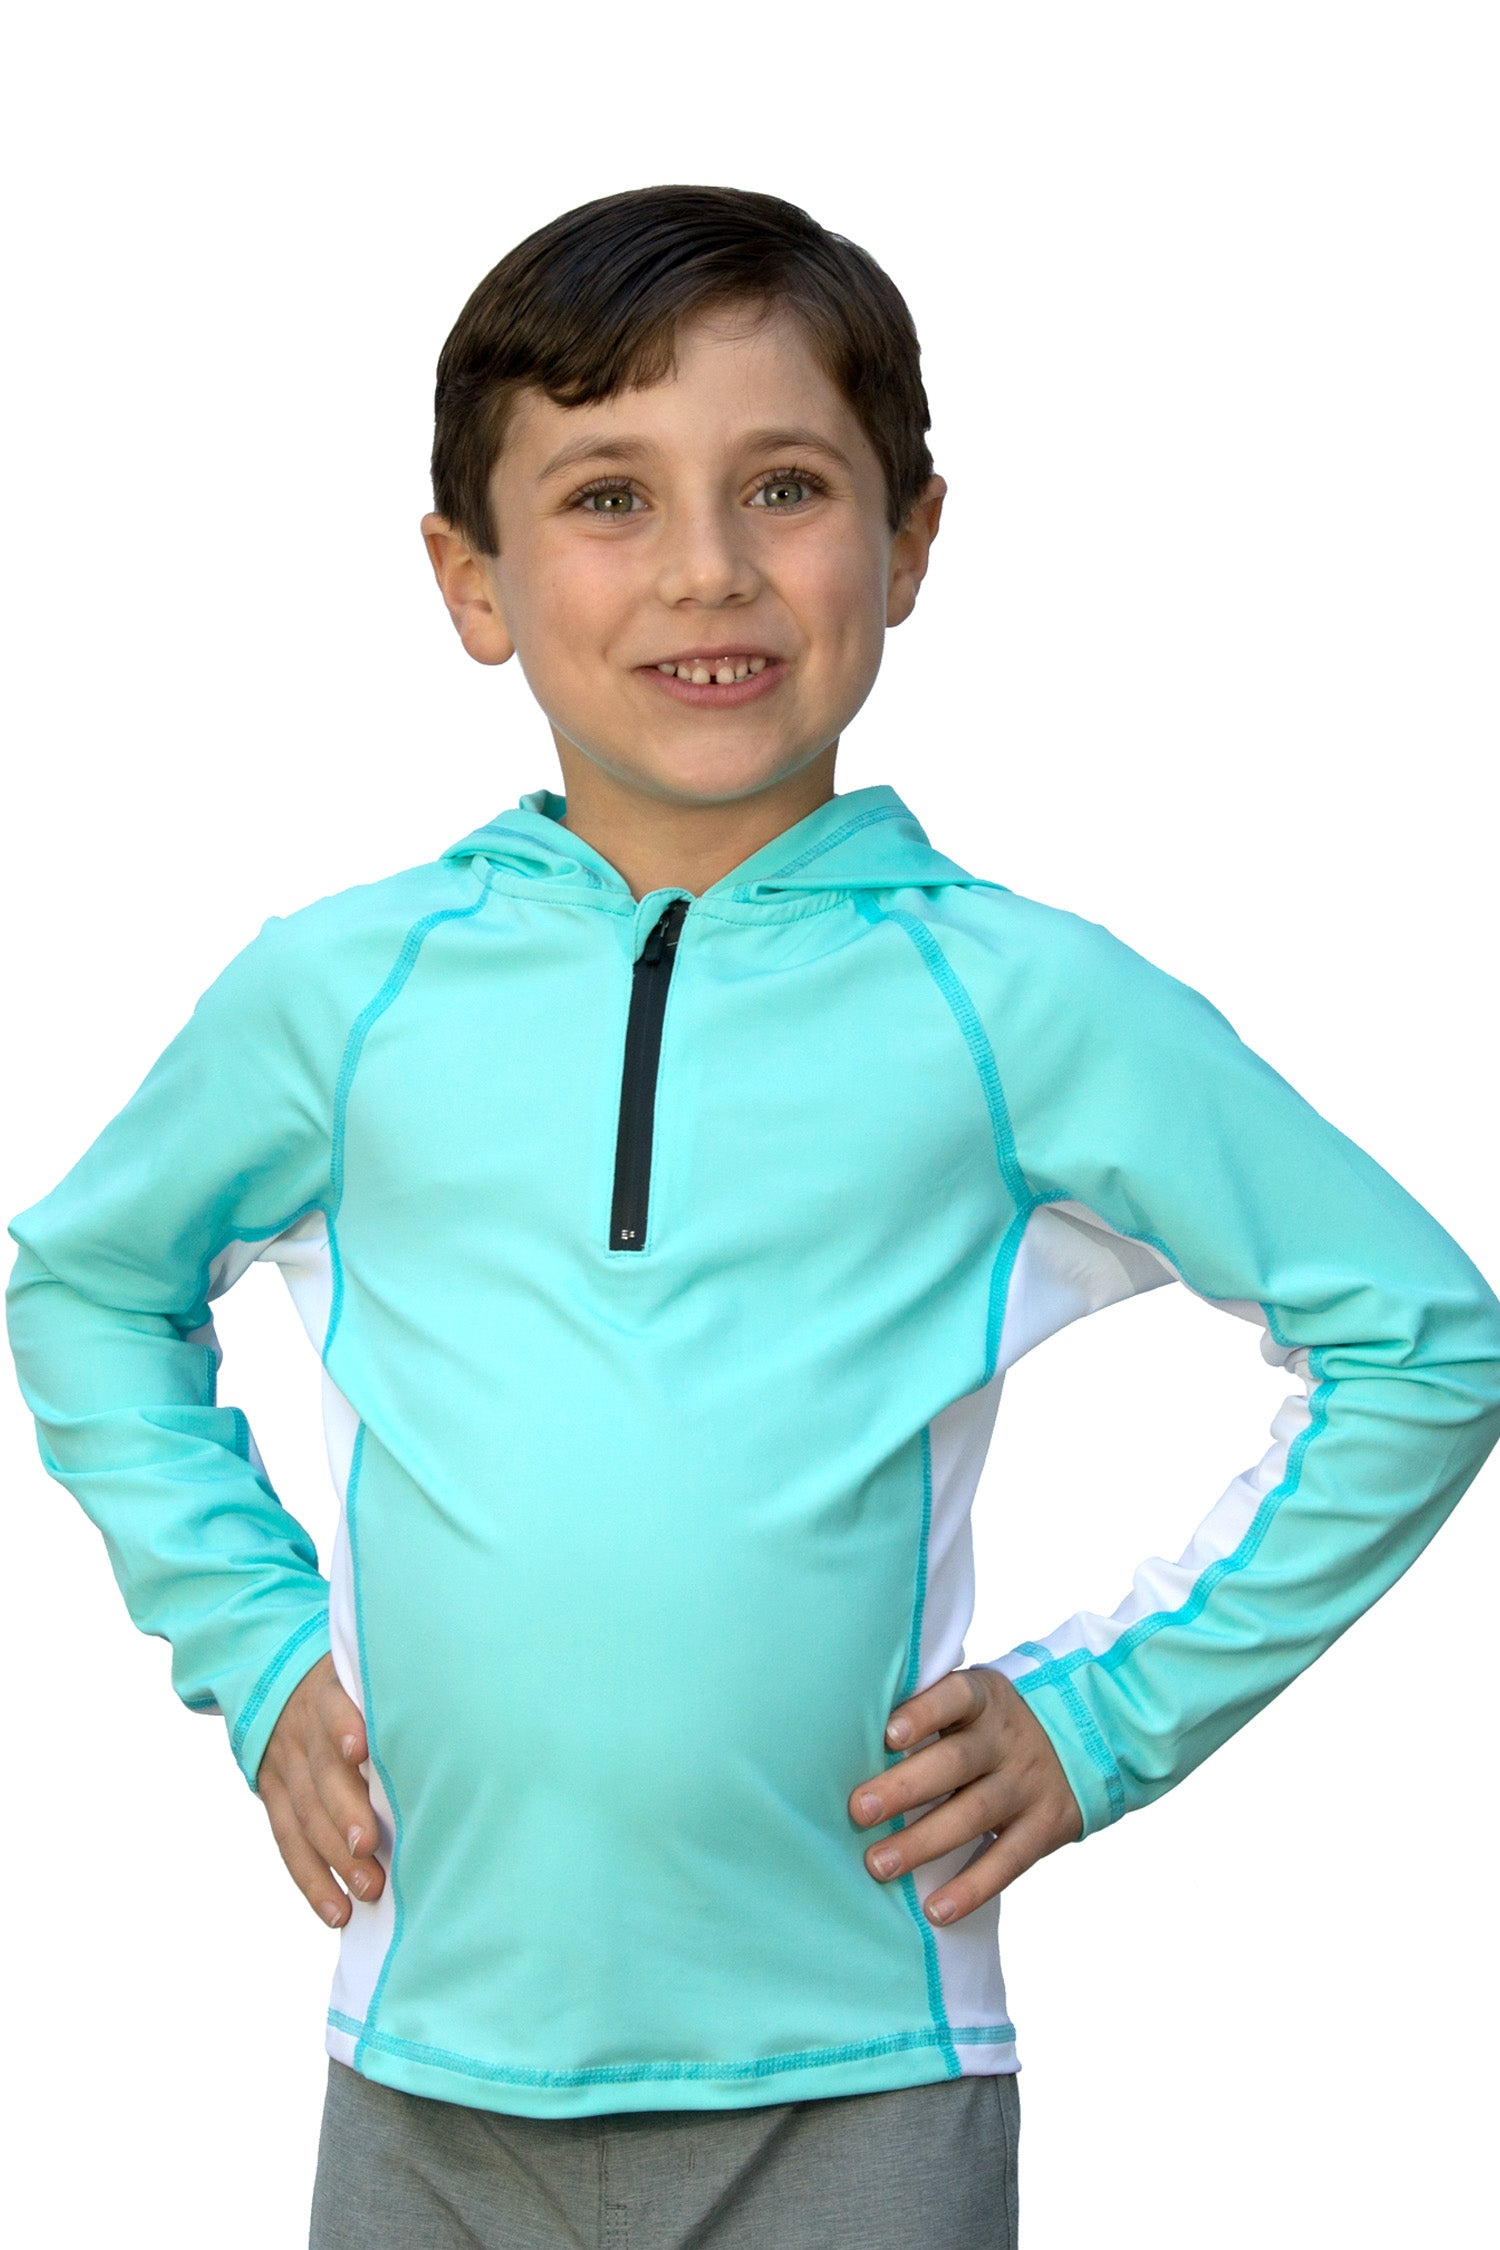 Lagoon with Salt Panel - Kids Swim Shirt / Rash Guard with a Hood